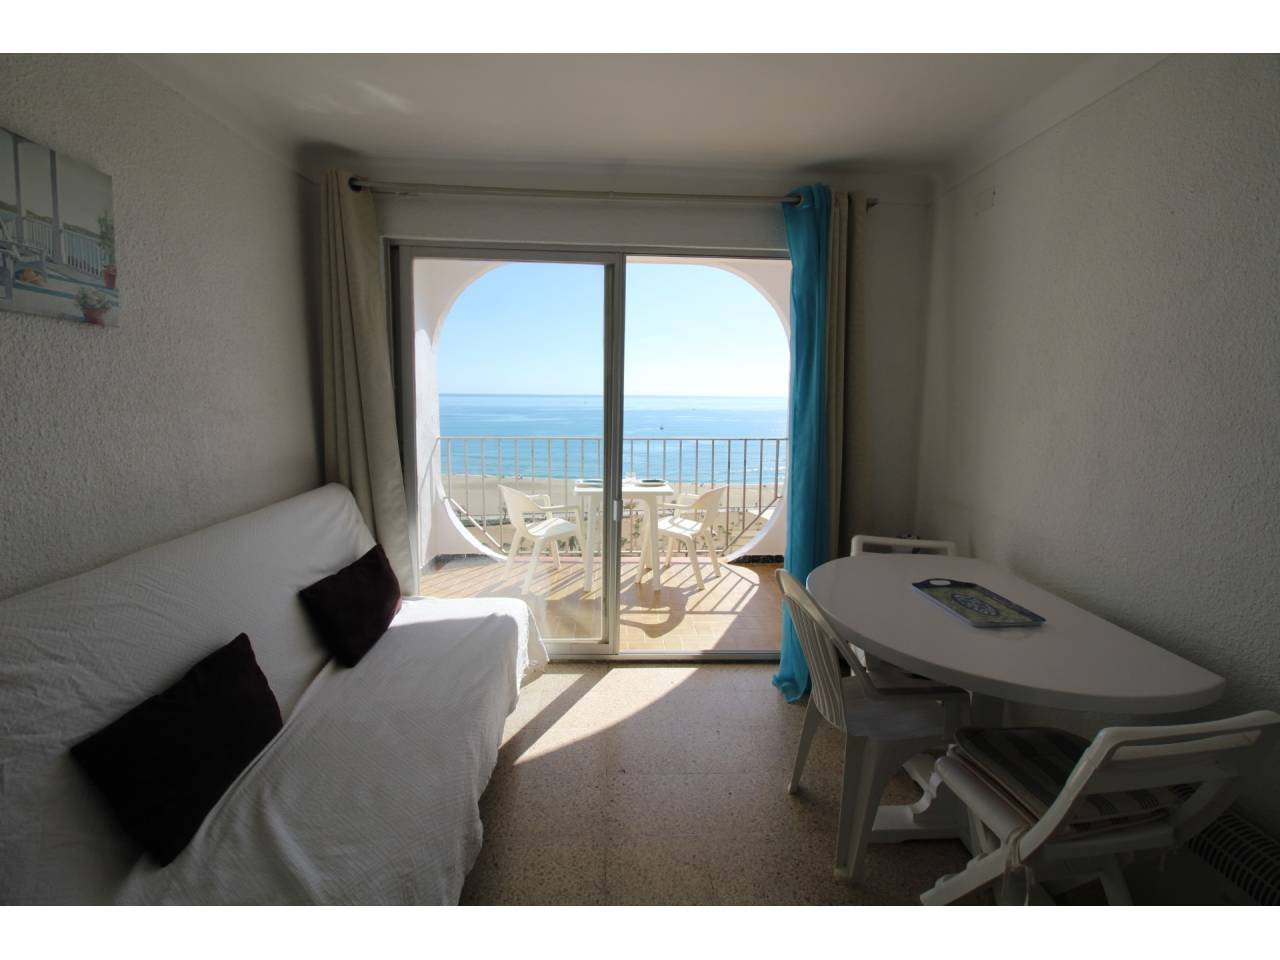 000008 - SYLVIA Studio with open room and seaview